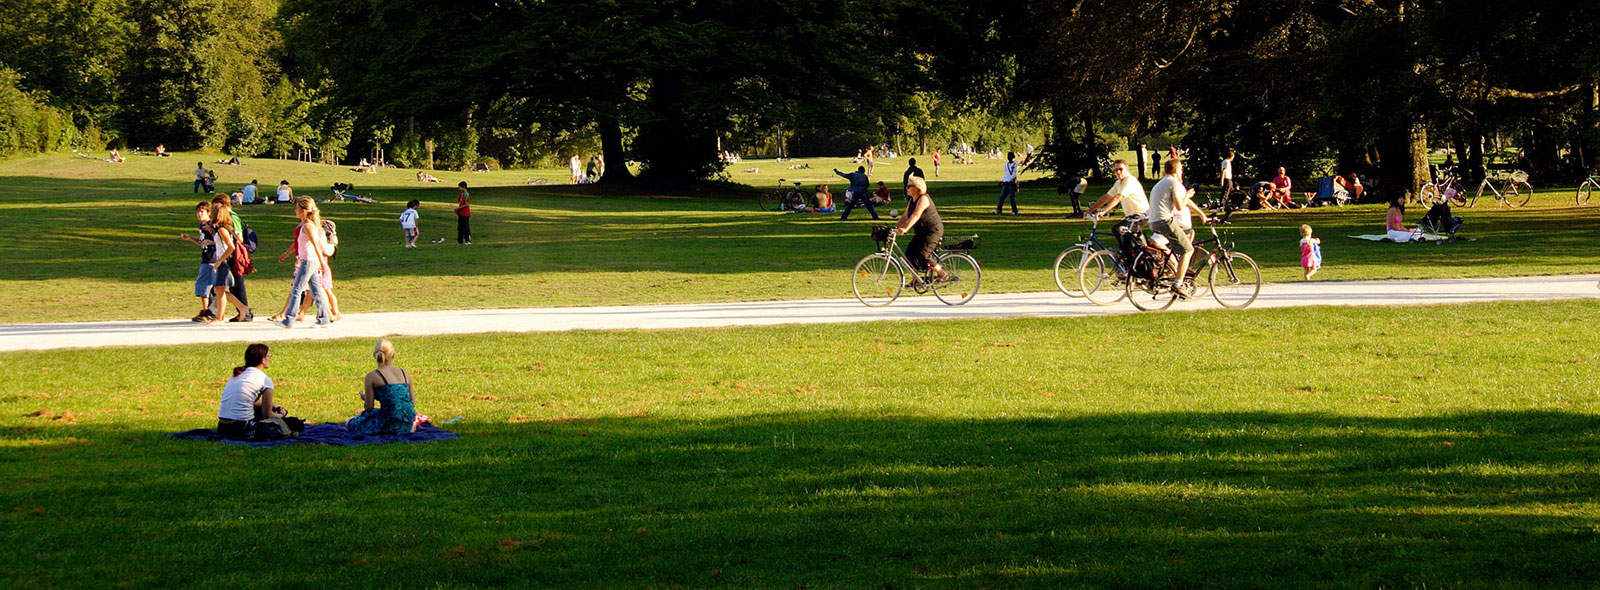 people sitting in sunshine on grass in a park